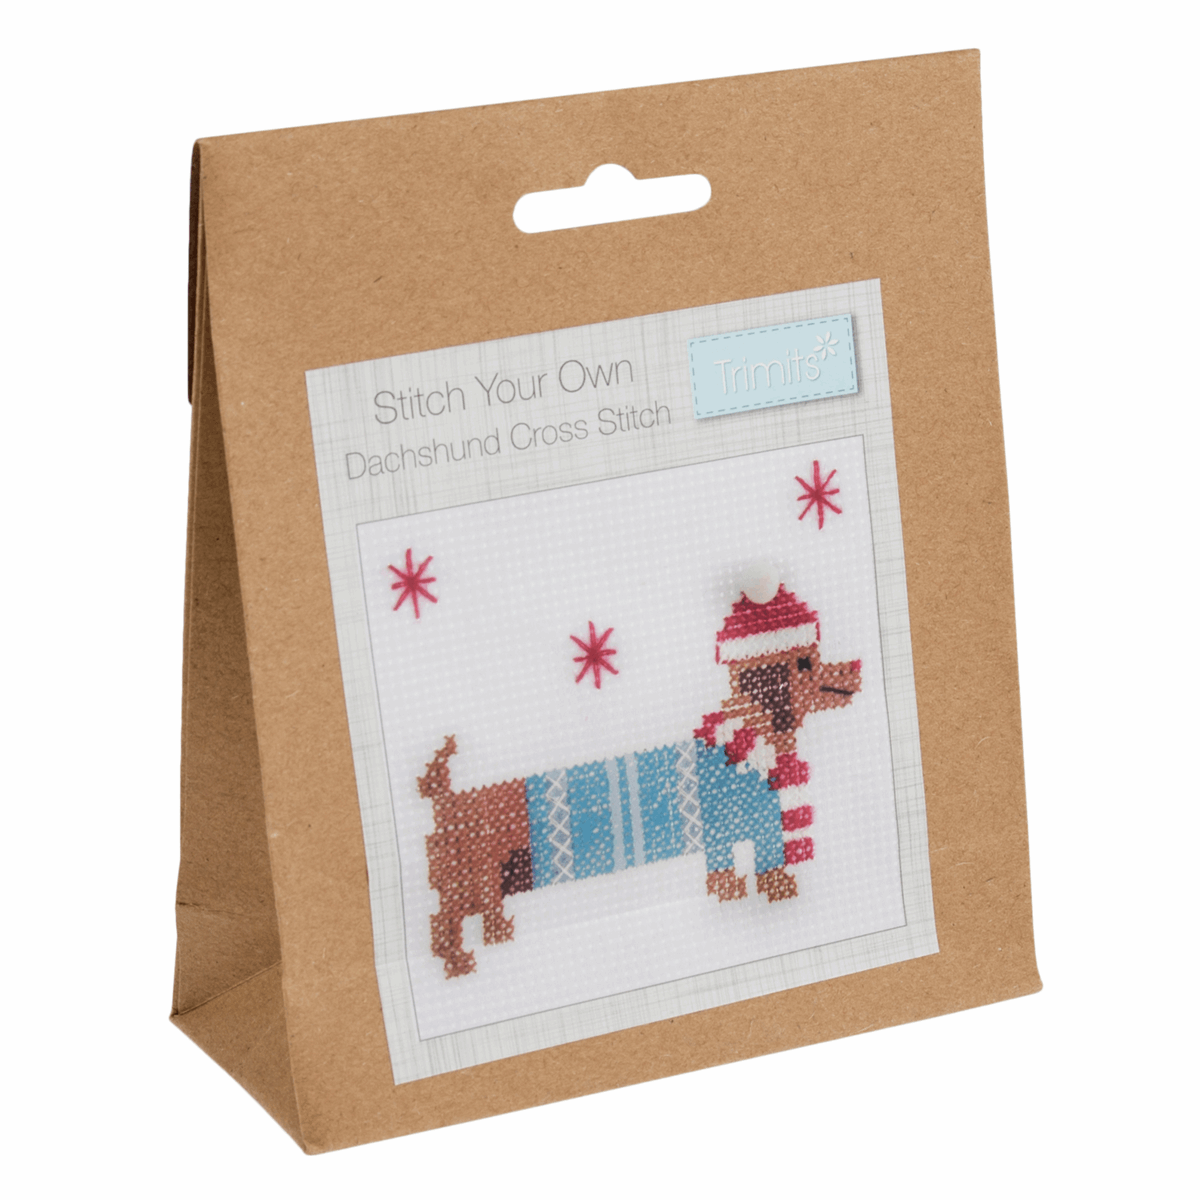 Picture of Mini Counted Cross Stitch Kit: Festive Daschund